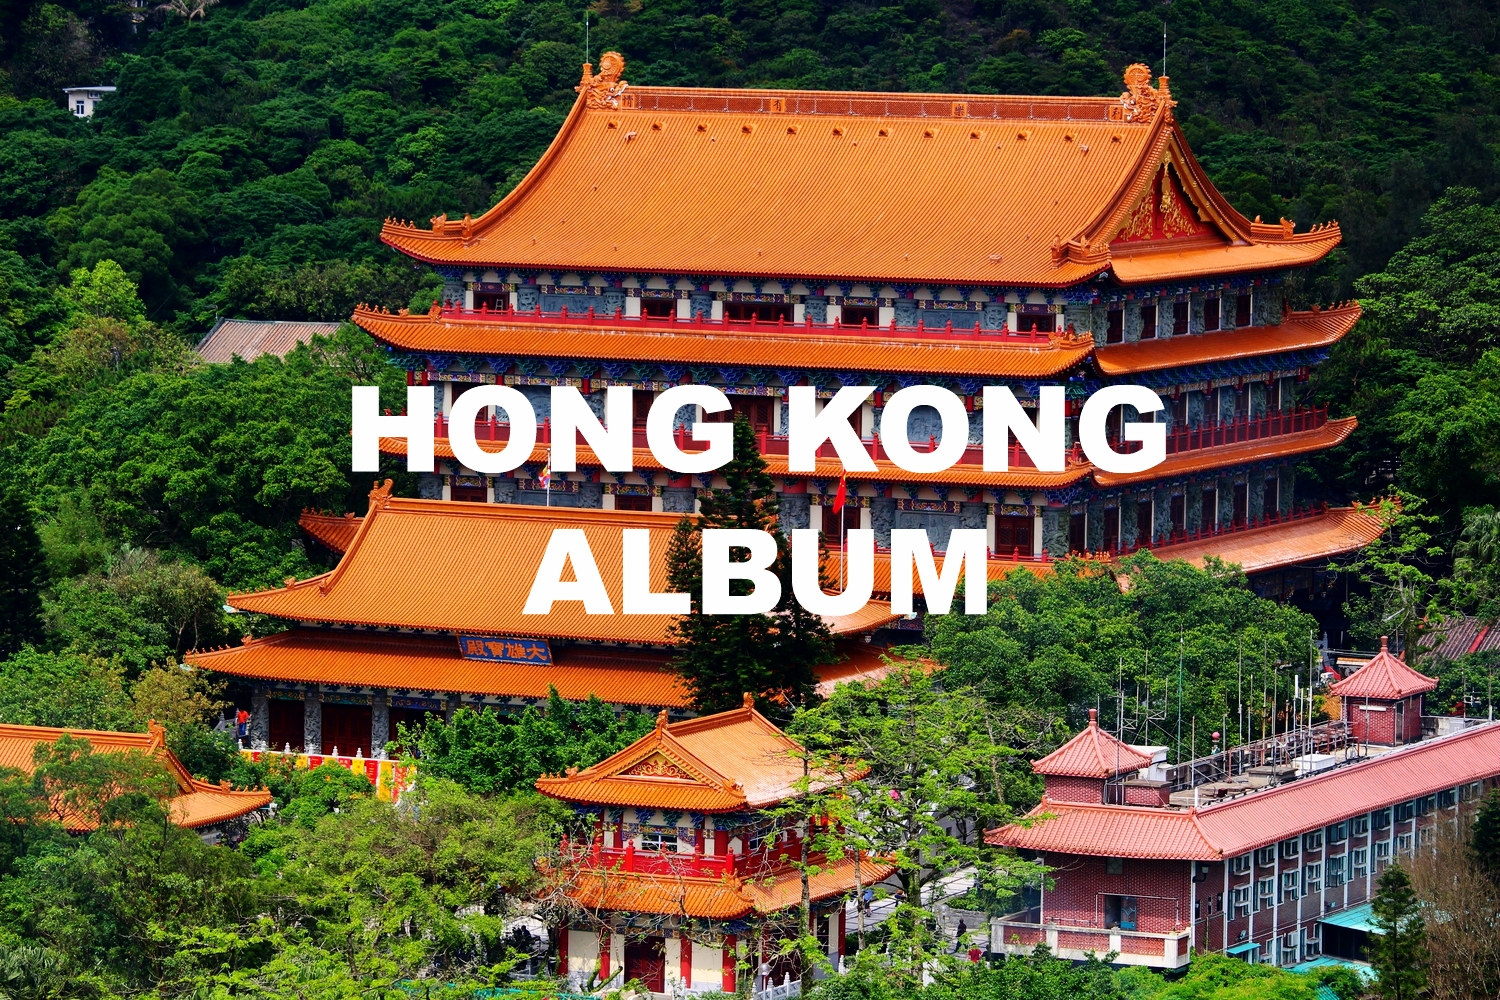 Hong Kong Album